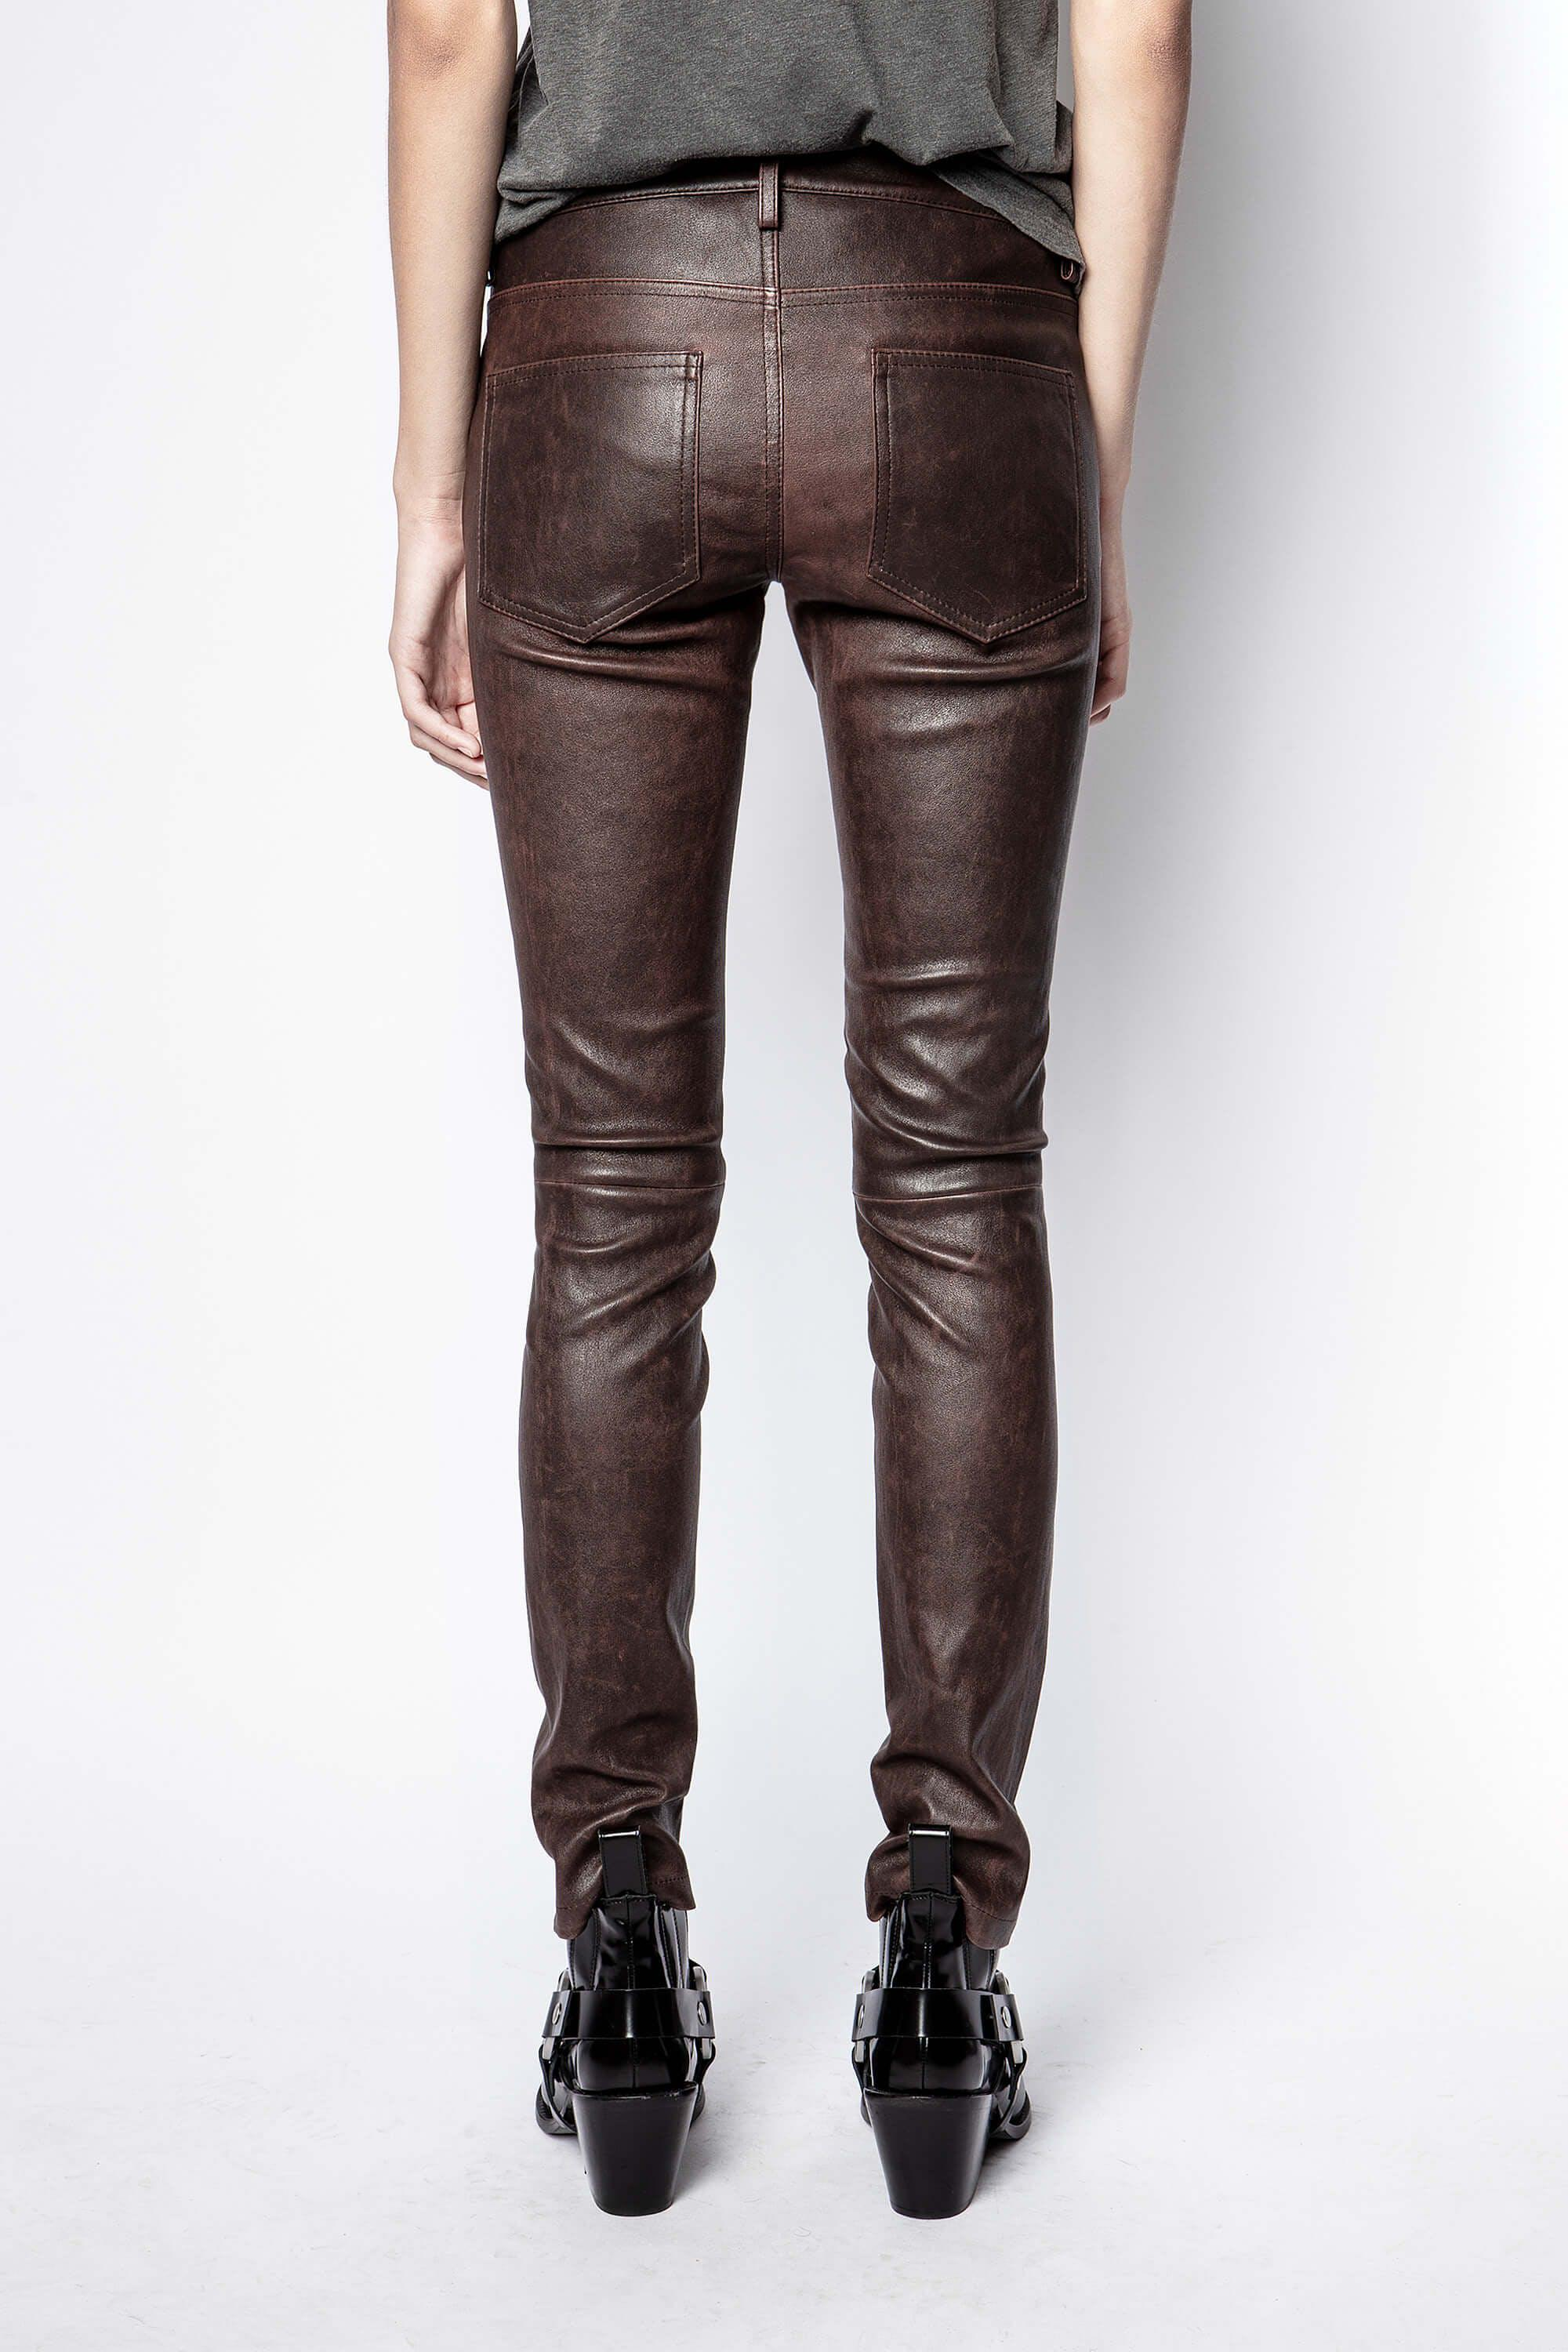 Phlame Leather Used Pants 2